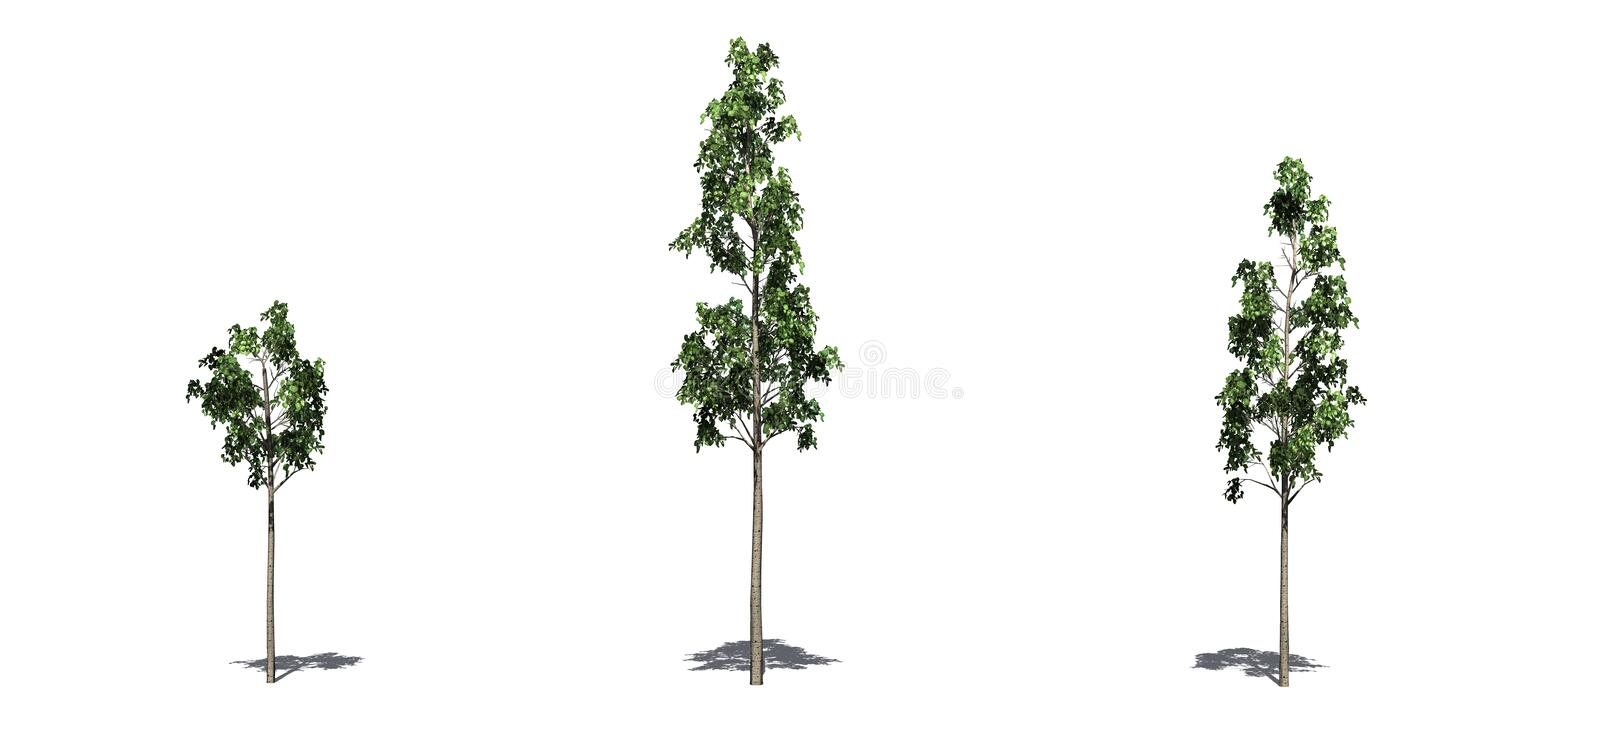 Set of European Aspen trees in the summer with shadow on the floor on white background. Set of European Aspen trees in the summer with shadow on the floor royalty free illustration